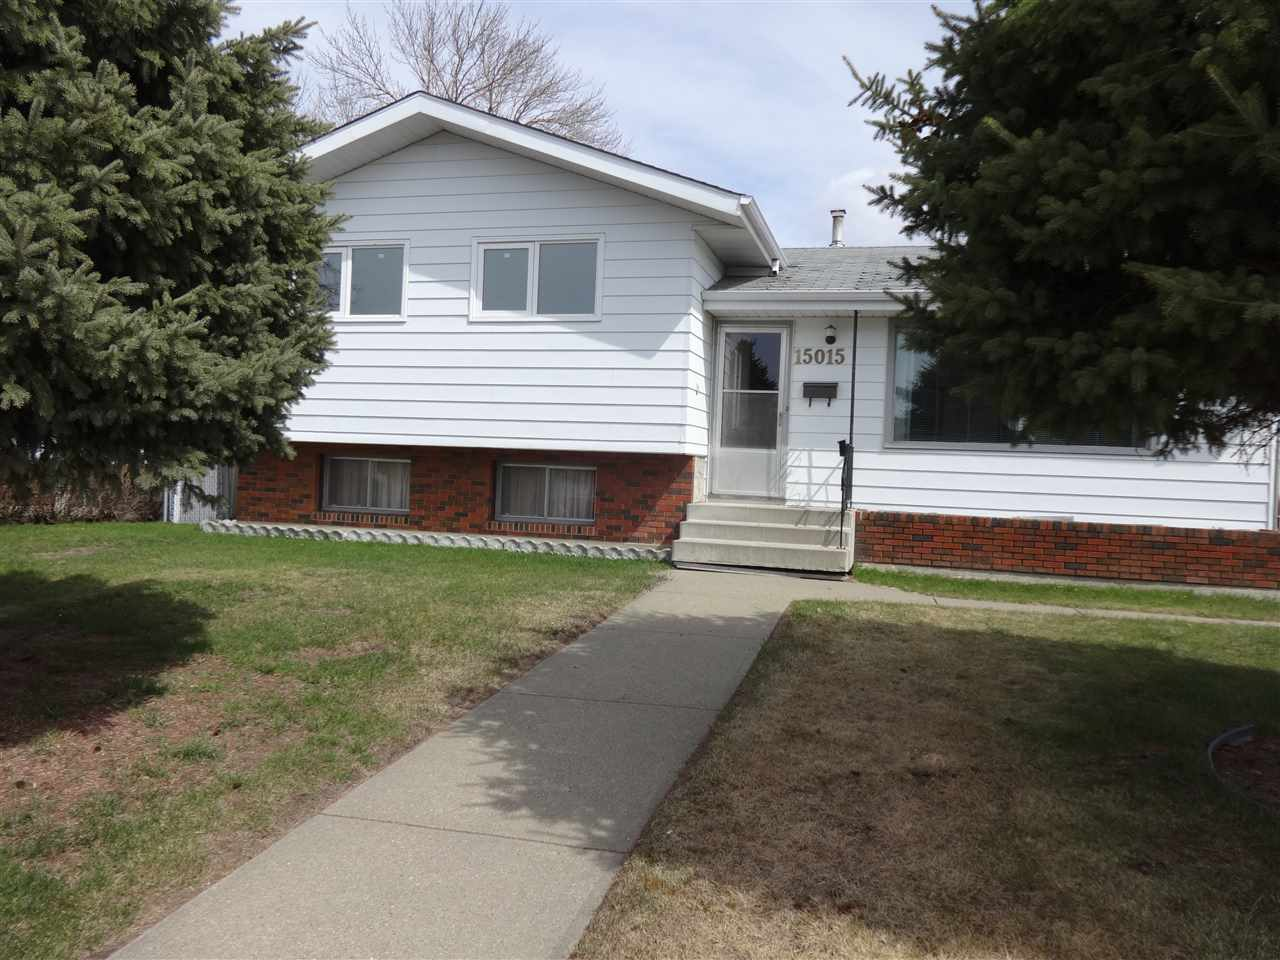 Welcome to the mature neighborhood of Evansdale! Close to shopping, parks, and transit, this house is the perfect place to call home! Situated on a huge lot, you will find this 1120sf, 4 level split has been very well maintained! Pride of ownership (original owners) is very evident! This home has two finished levels above grade, with two unfinished levels below grade awaiting your personal touches. The main floor has living room, dining room and U-shaped kitchen. Upstairs, you will find 3 good size bedrooms and 4 piece guest bathroom. The master suite is situated on the backside of the house and has an attached 2 piece ensuite. The lot is massive measuring 557 square meters. Enjoy the landscaped and fenced back yard, siting on the private patio, or maybe taking up gardening! The garage is massive measuring 24x28. There have been some upgrades over the years. All windows above grade have been upgraded to vinyl, except for the living-room window, furnace 2002, and shingles 2005. Welcome home